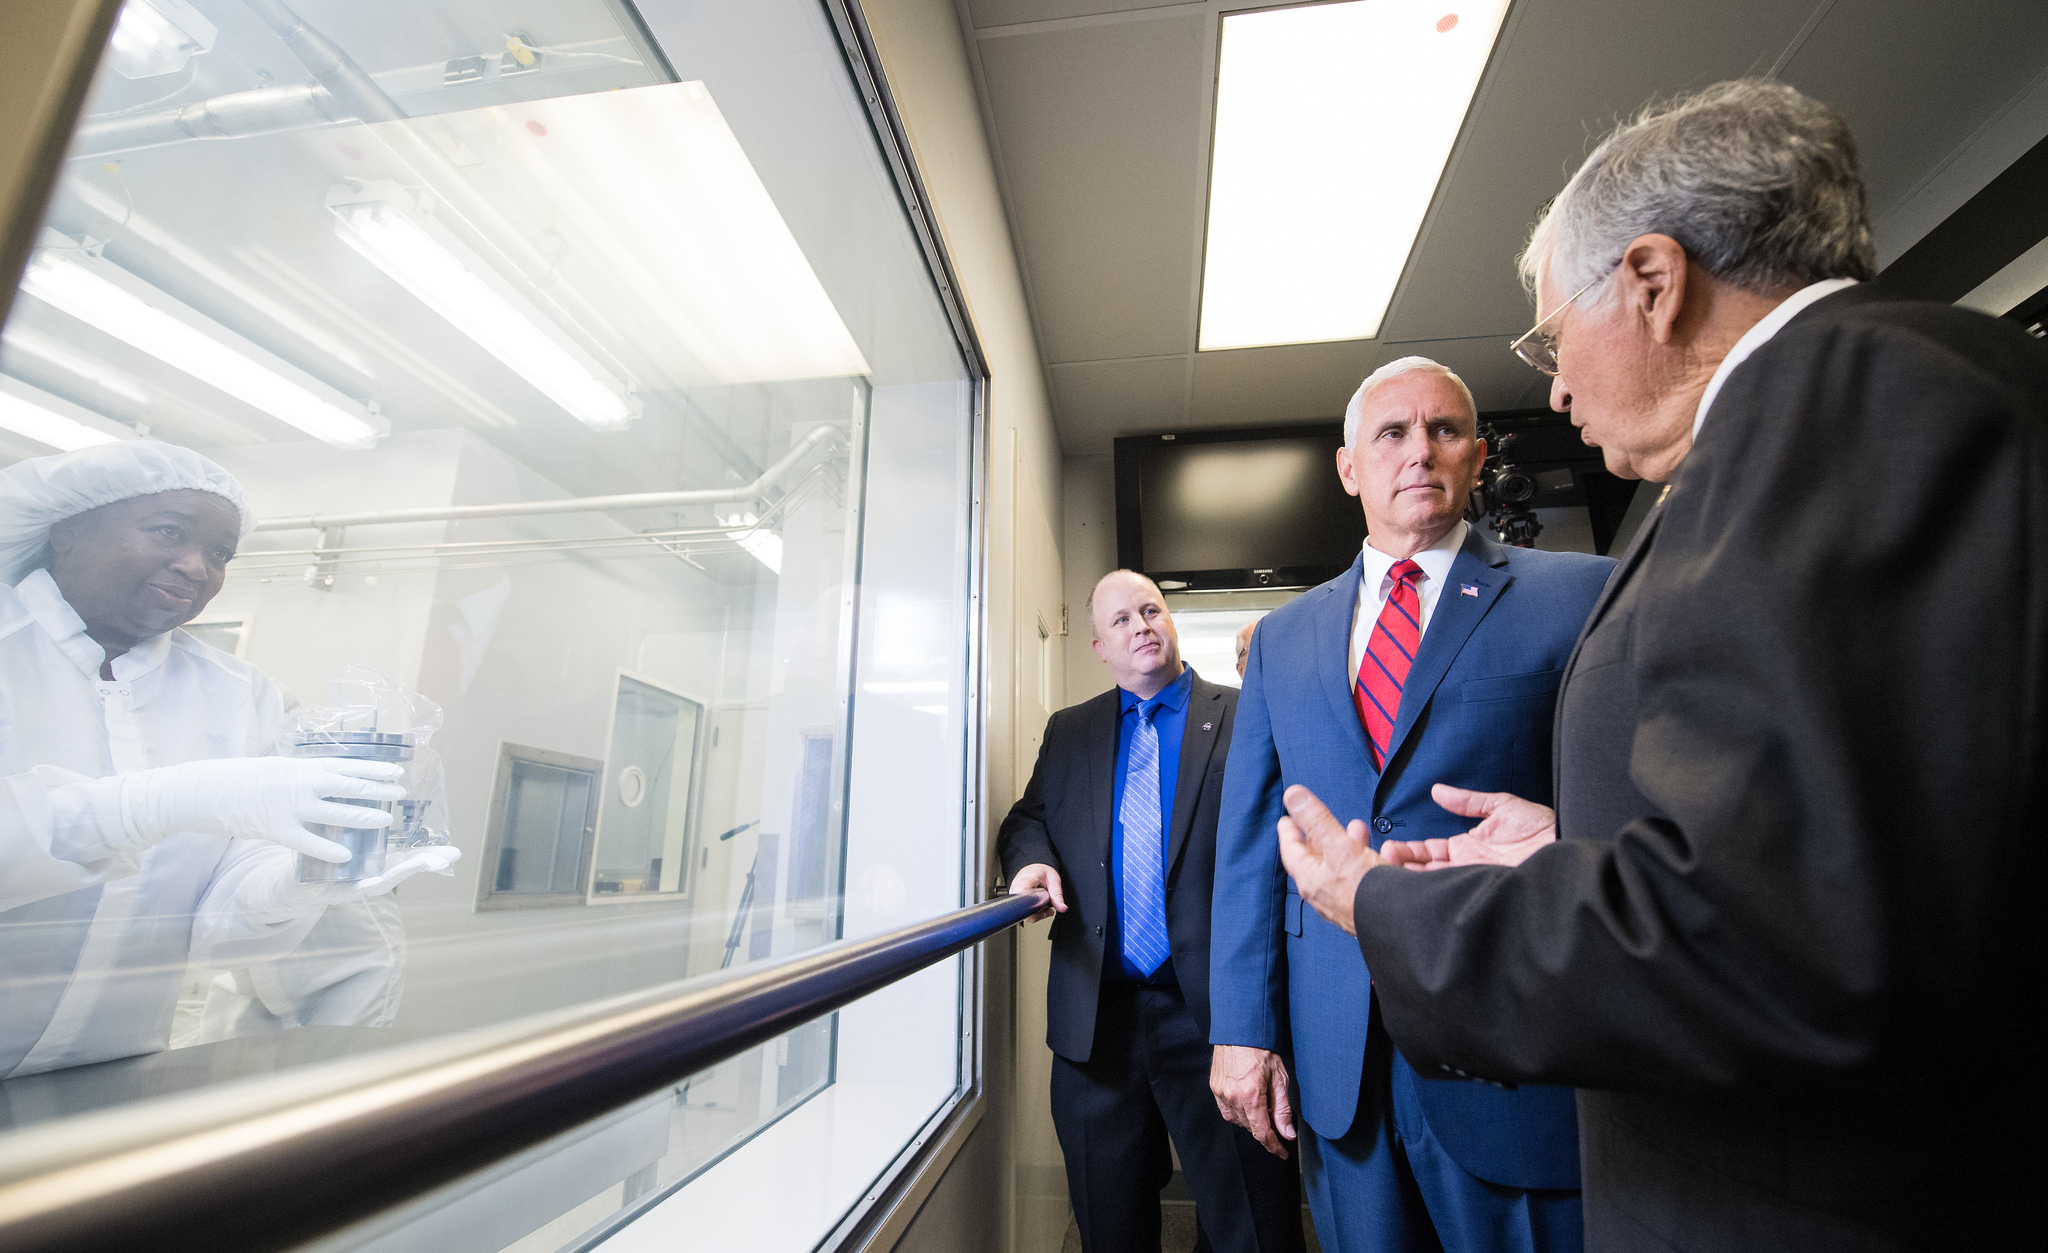 Pence views Sample 15014, which was collected during Apollo 15, with NASA's Apollo Sample Curator Ryan Zeigler, left, and Apollo 17 astronaut Harrison Schmitt, right, in Lunar Curation Laboratory at NASA's Johnson Space Center, Thursday.